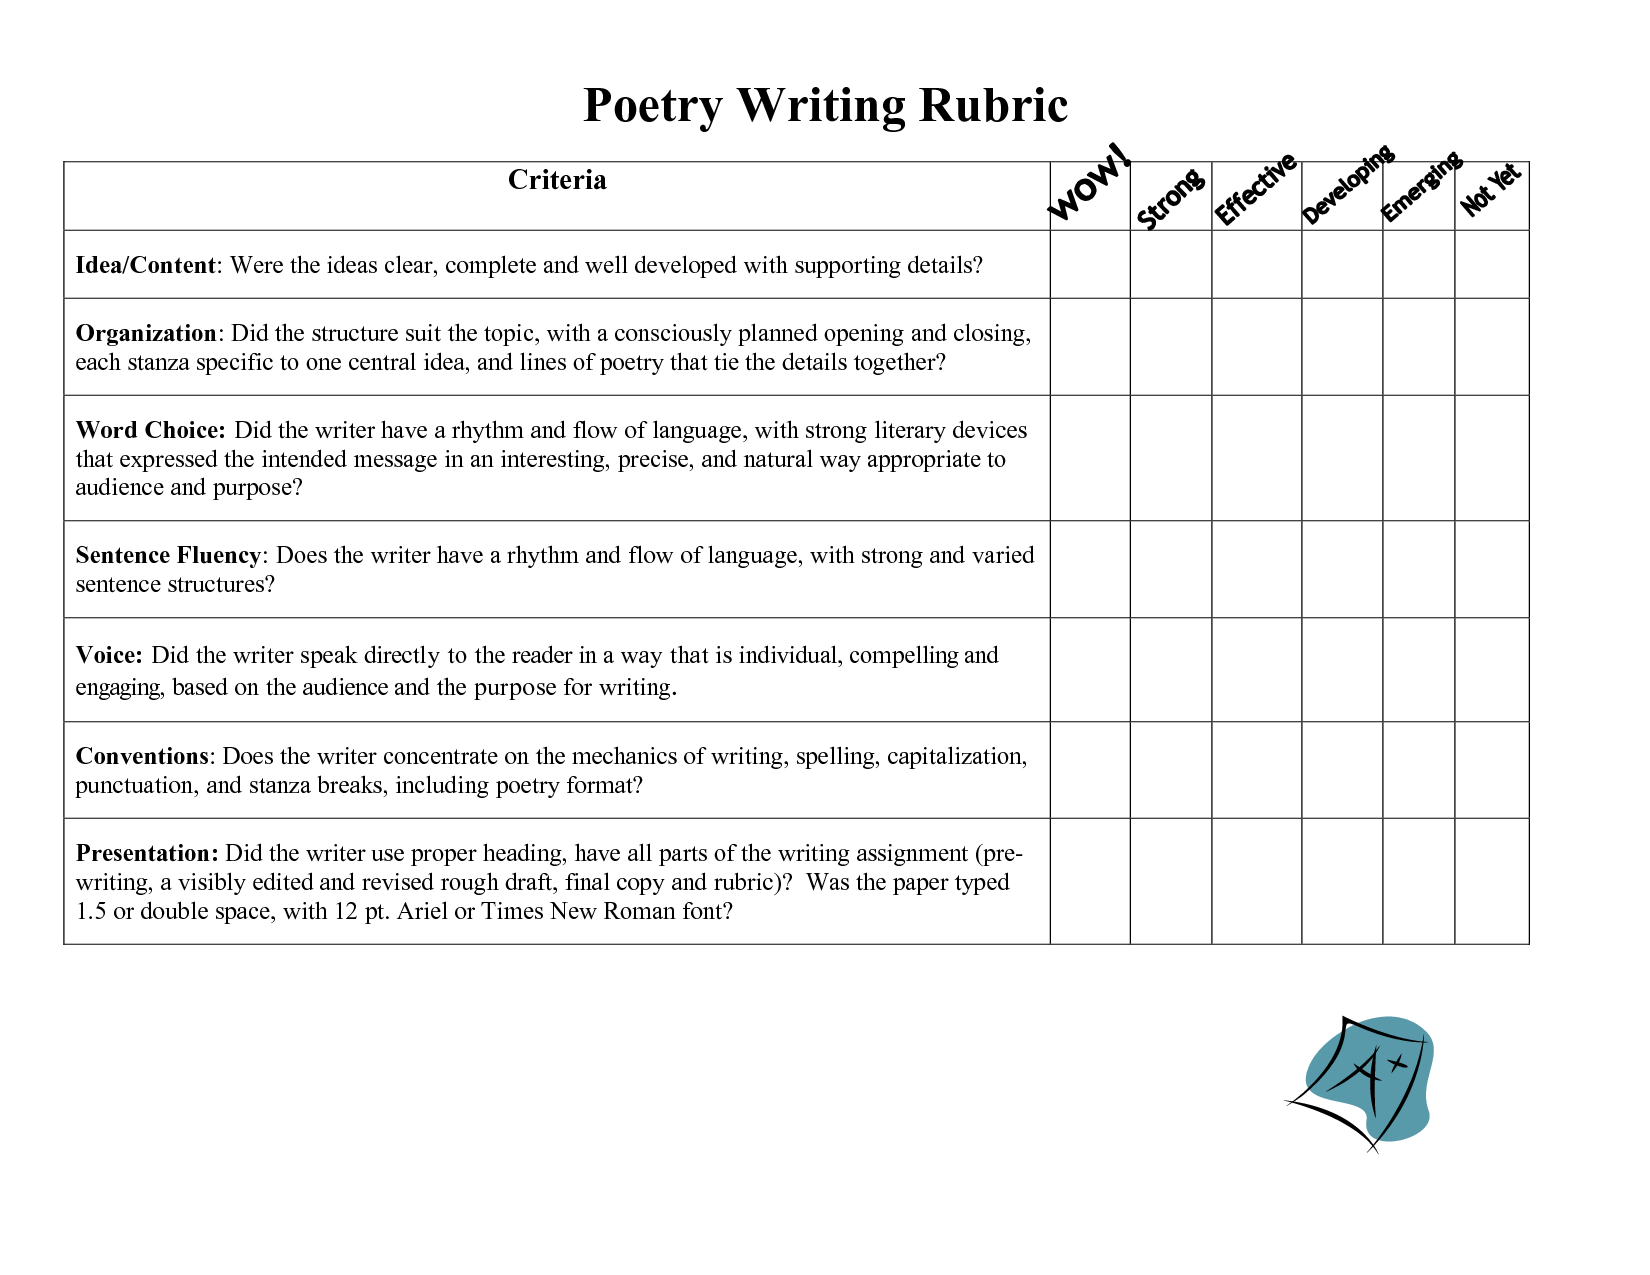 Assessment and Rubrics   Kathy Schrock s Guide to Everything English literature essay  What is the thesis statement in the     High School Narrative Rubric